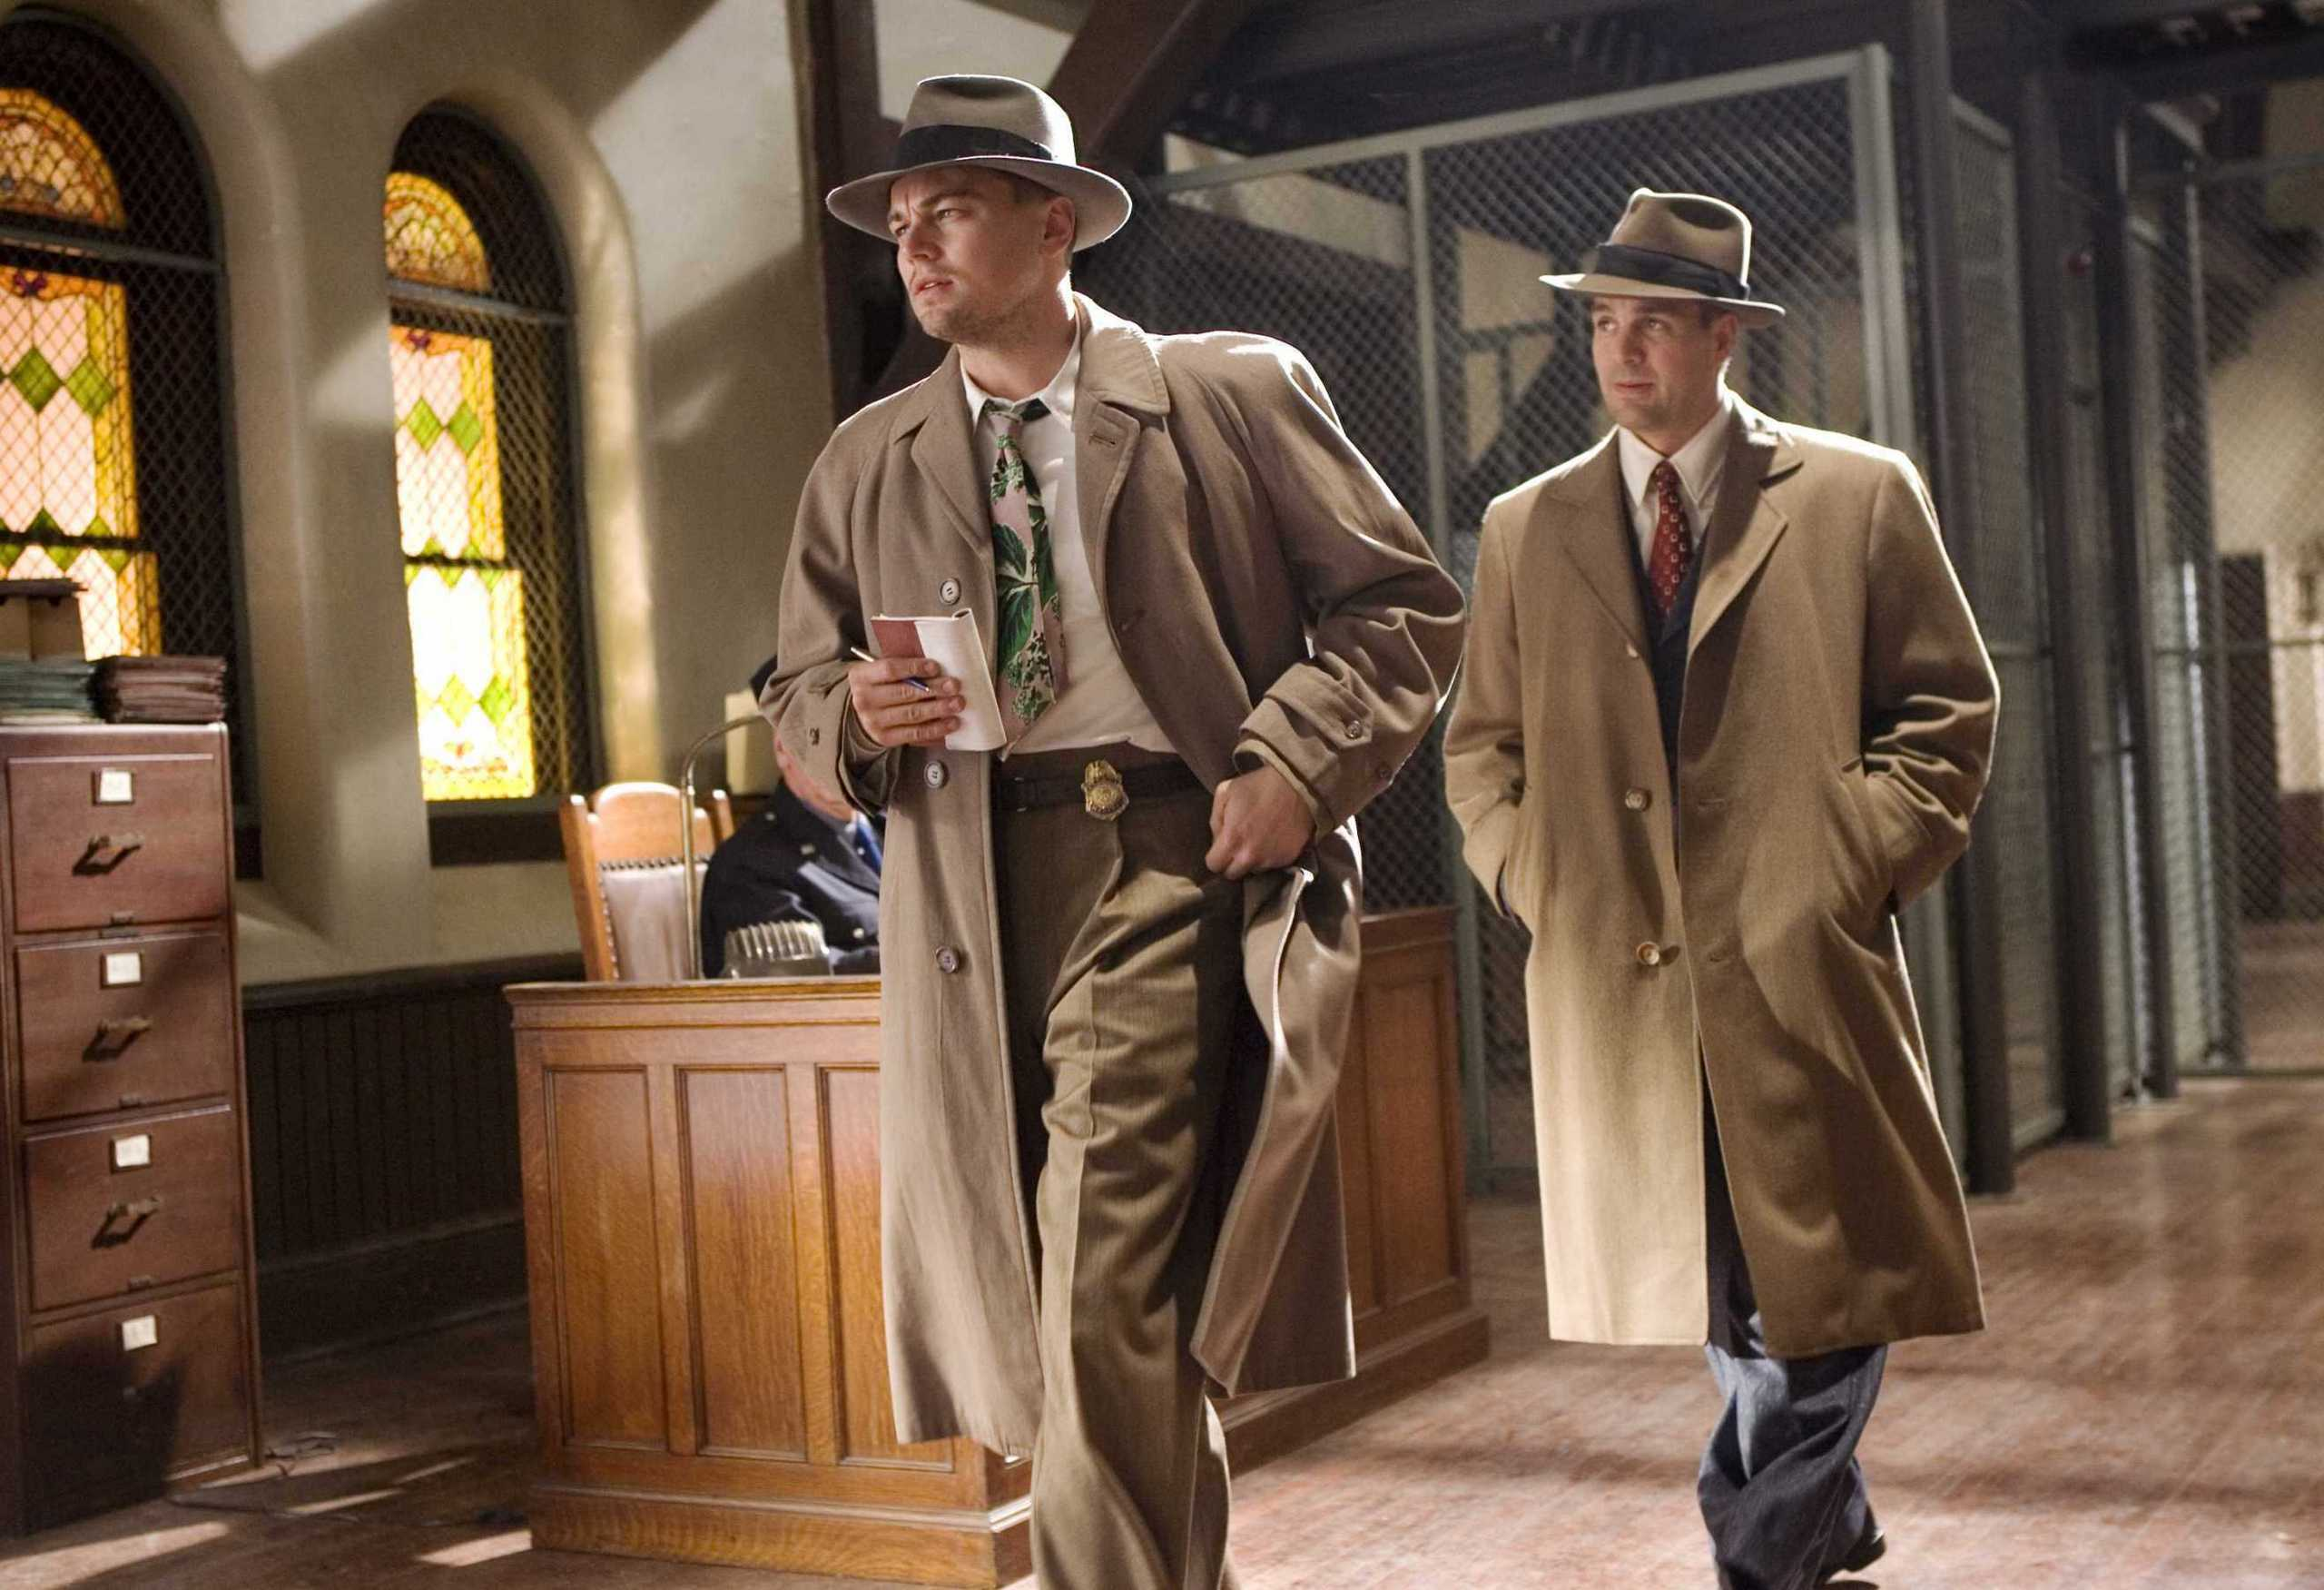 shutter island film critique Shutter island addresses some powerful, disturbing concepts but, despite effective performances by the leads, the movie's psychological impact is minimal read full review 75.